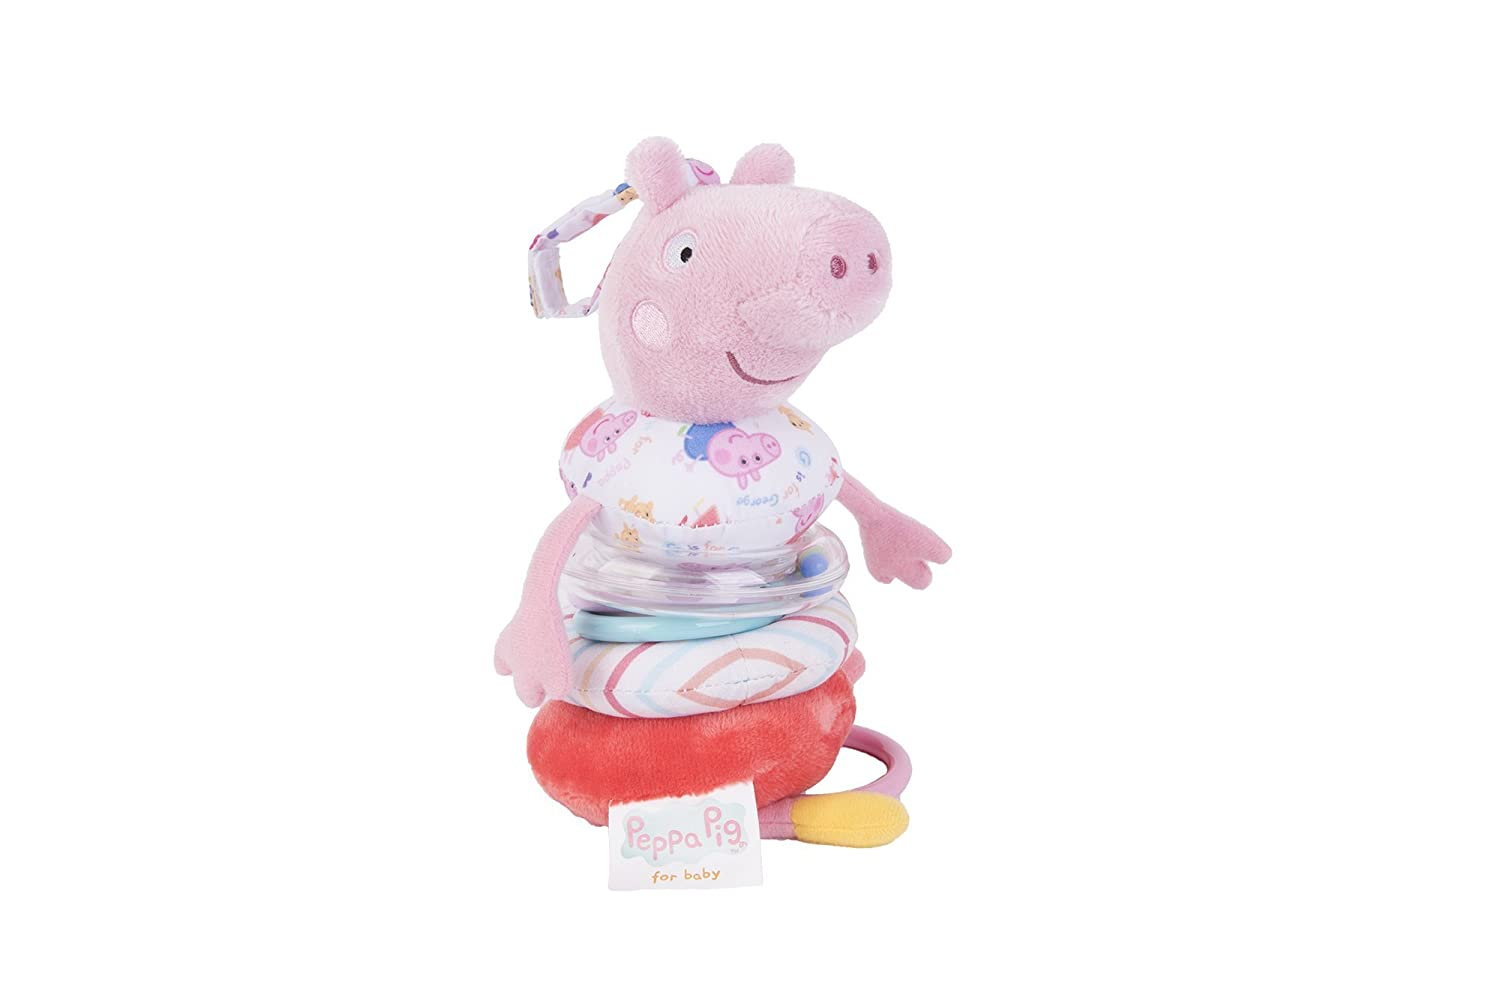 Rainbow Designs Peppa Pig for Baby Jiggle Peppa Pig RAINBOW DESIGNS LTD PP1339